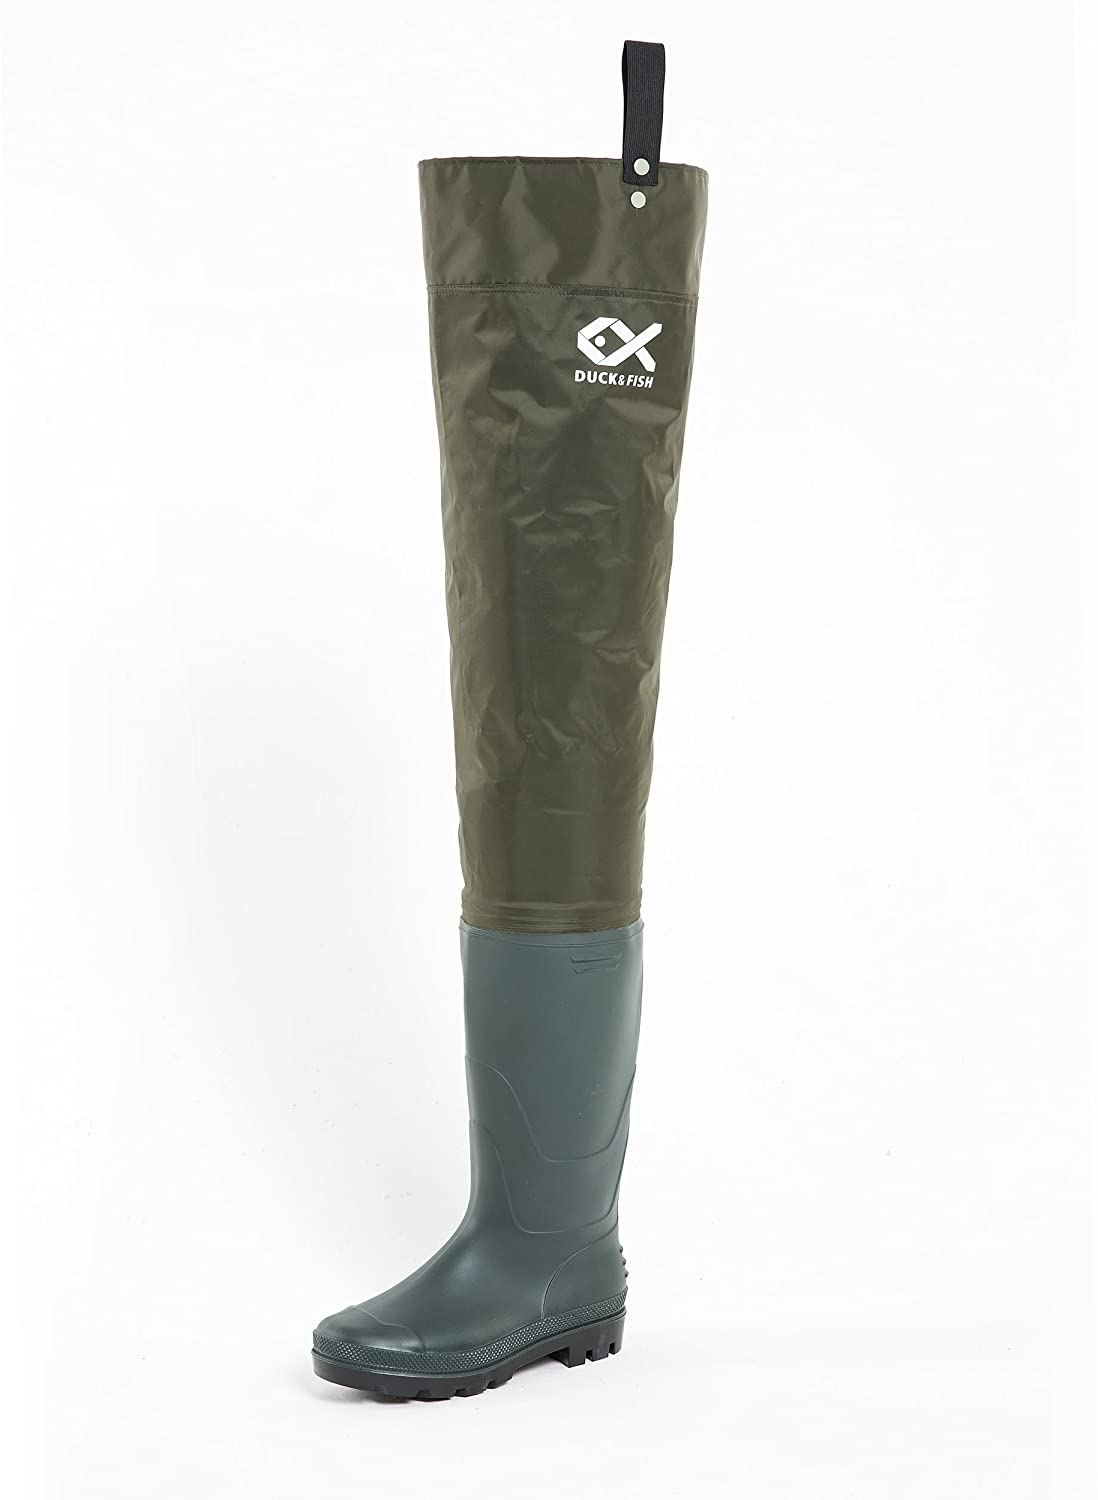 Duck and Fish Green Fishing Wader Hip Boots with Cleated Outsole